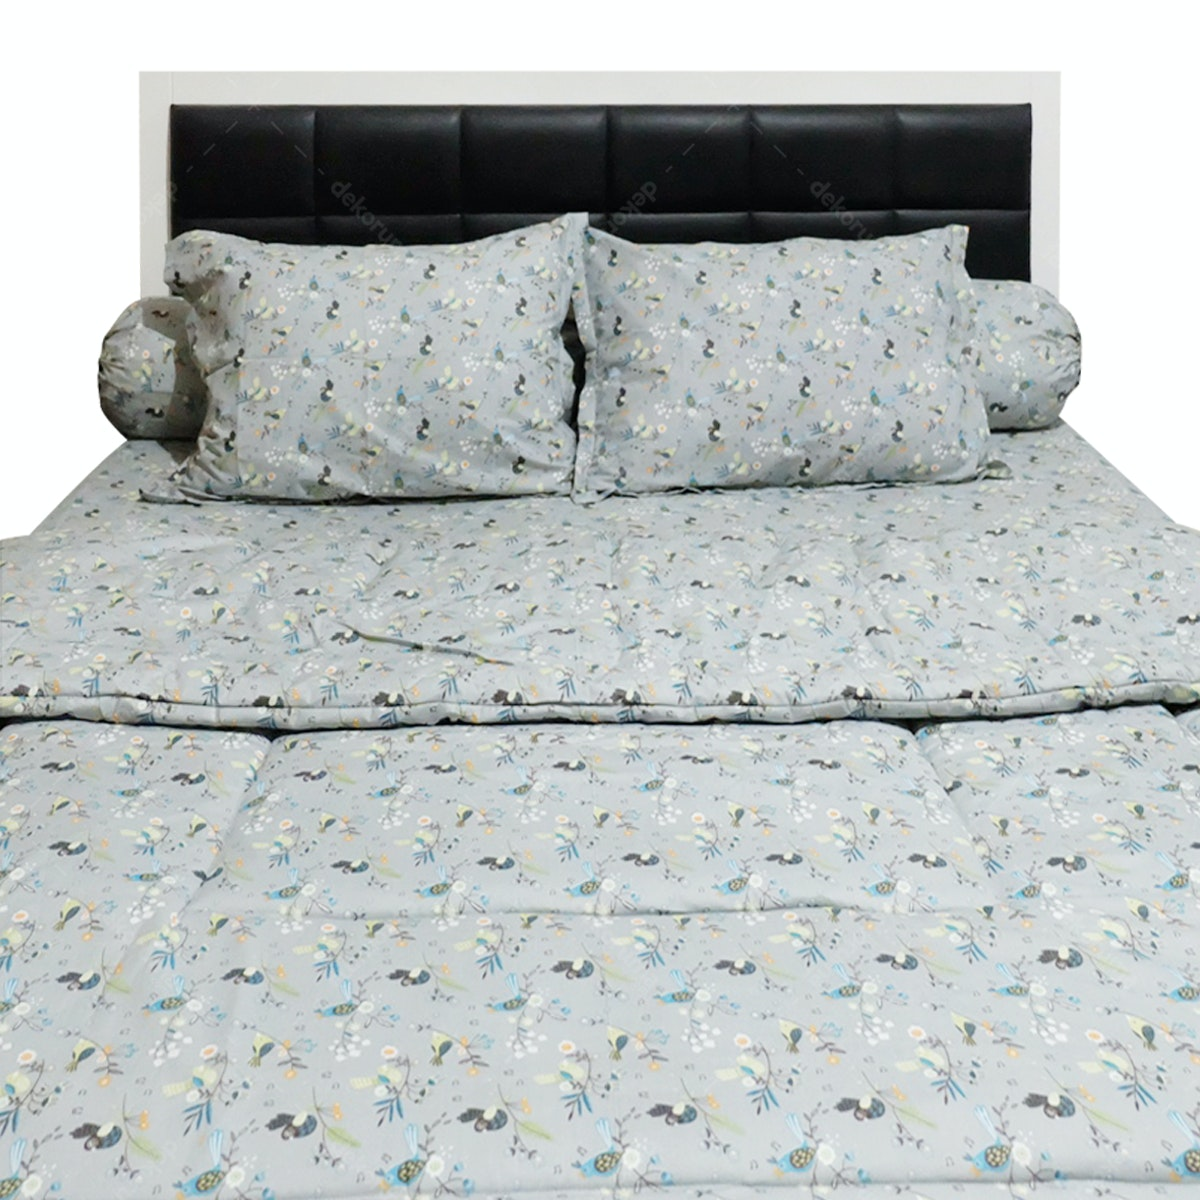 Sleep Buddy Set Sprei dan Bed Cover Morning Tweet Grey CVC 200x200x30